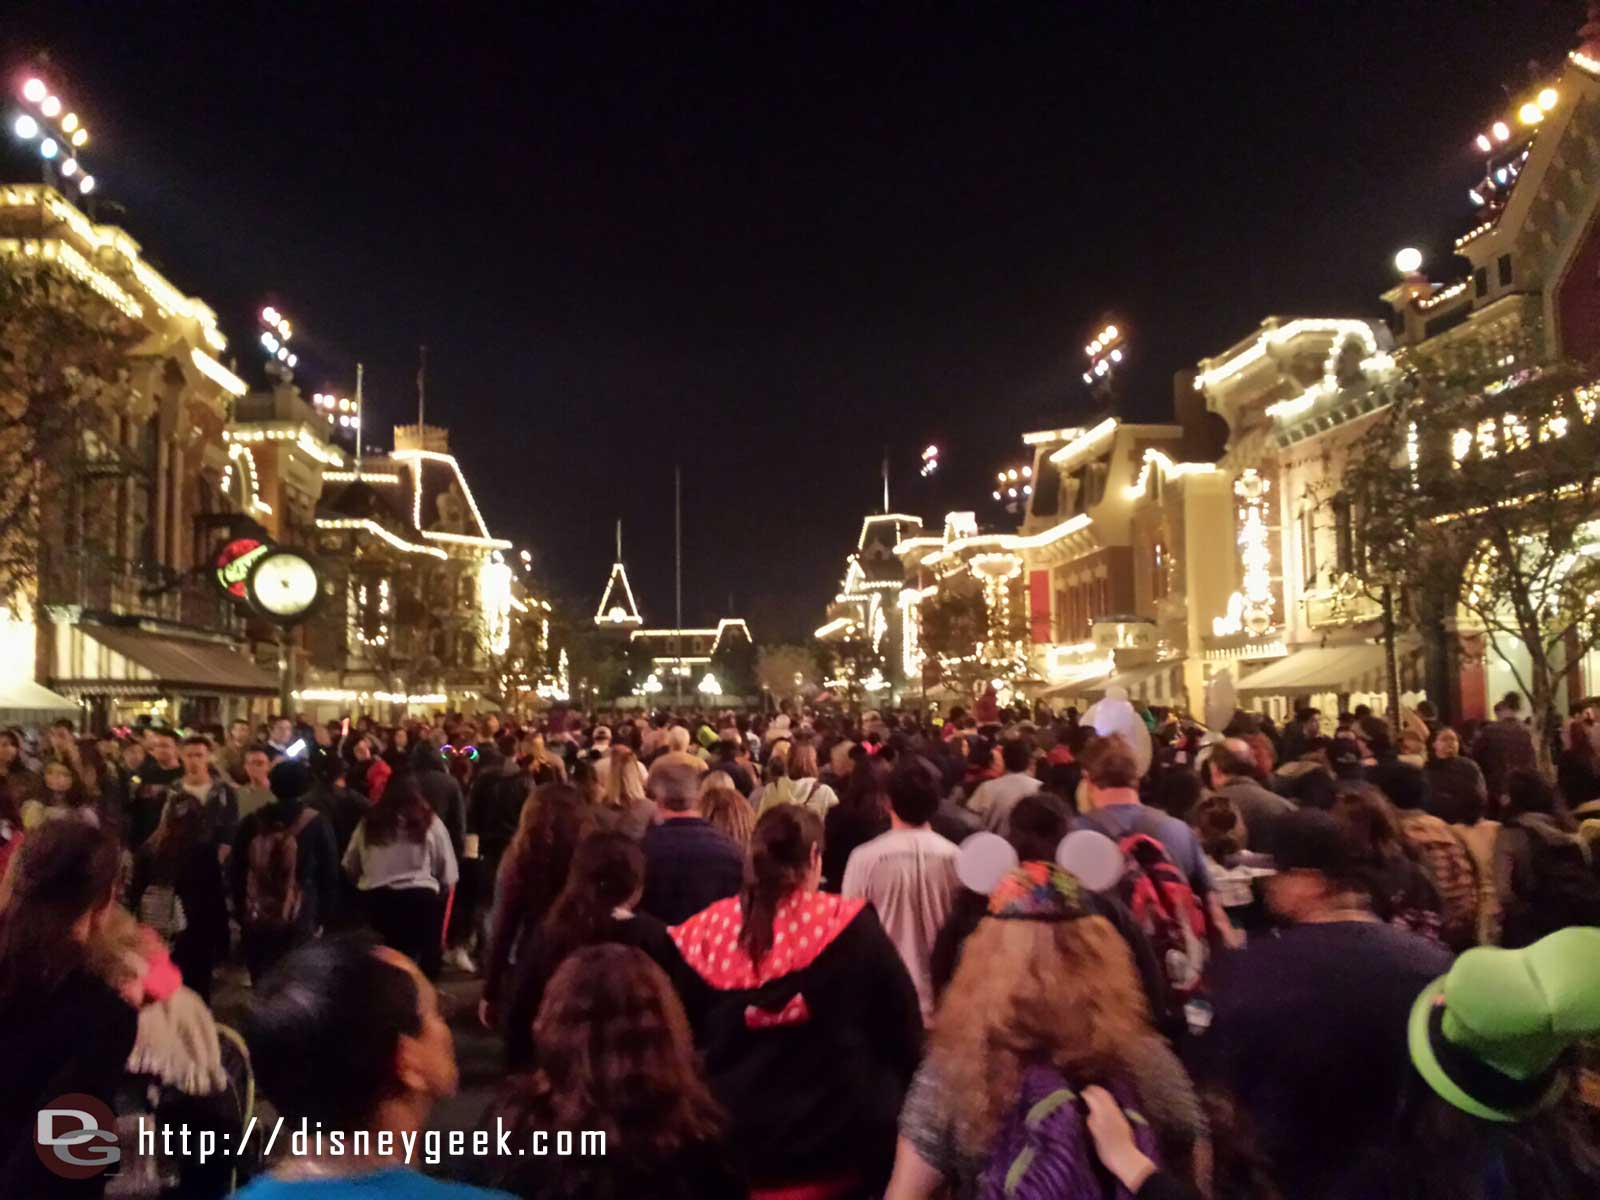 Main Street USA #Disneyland after the fireworks